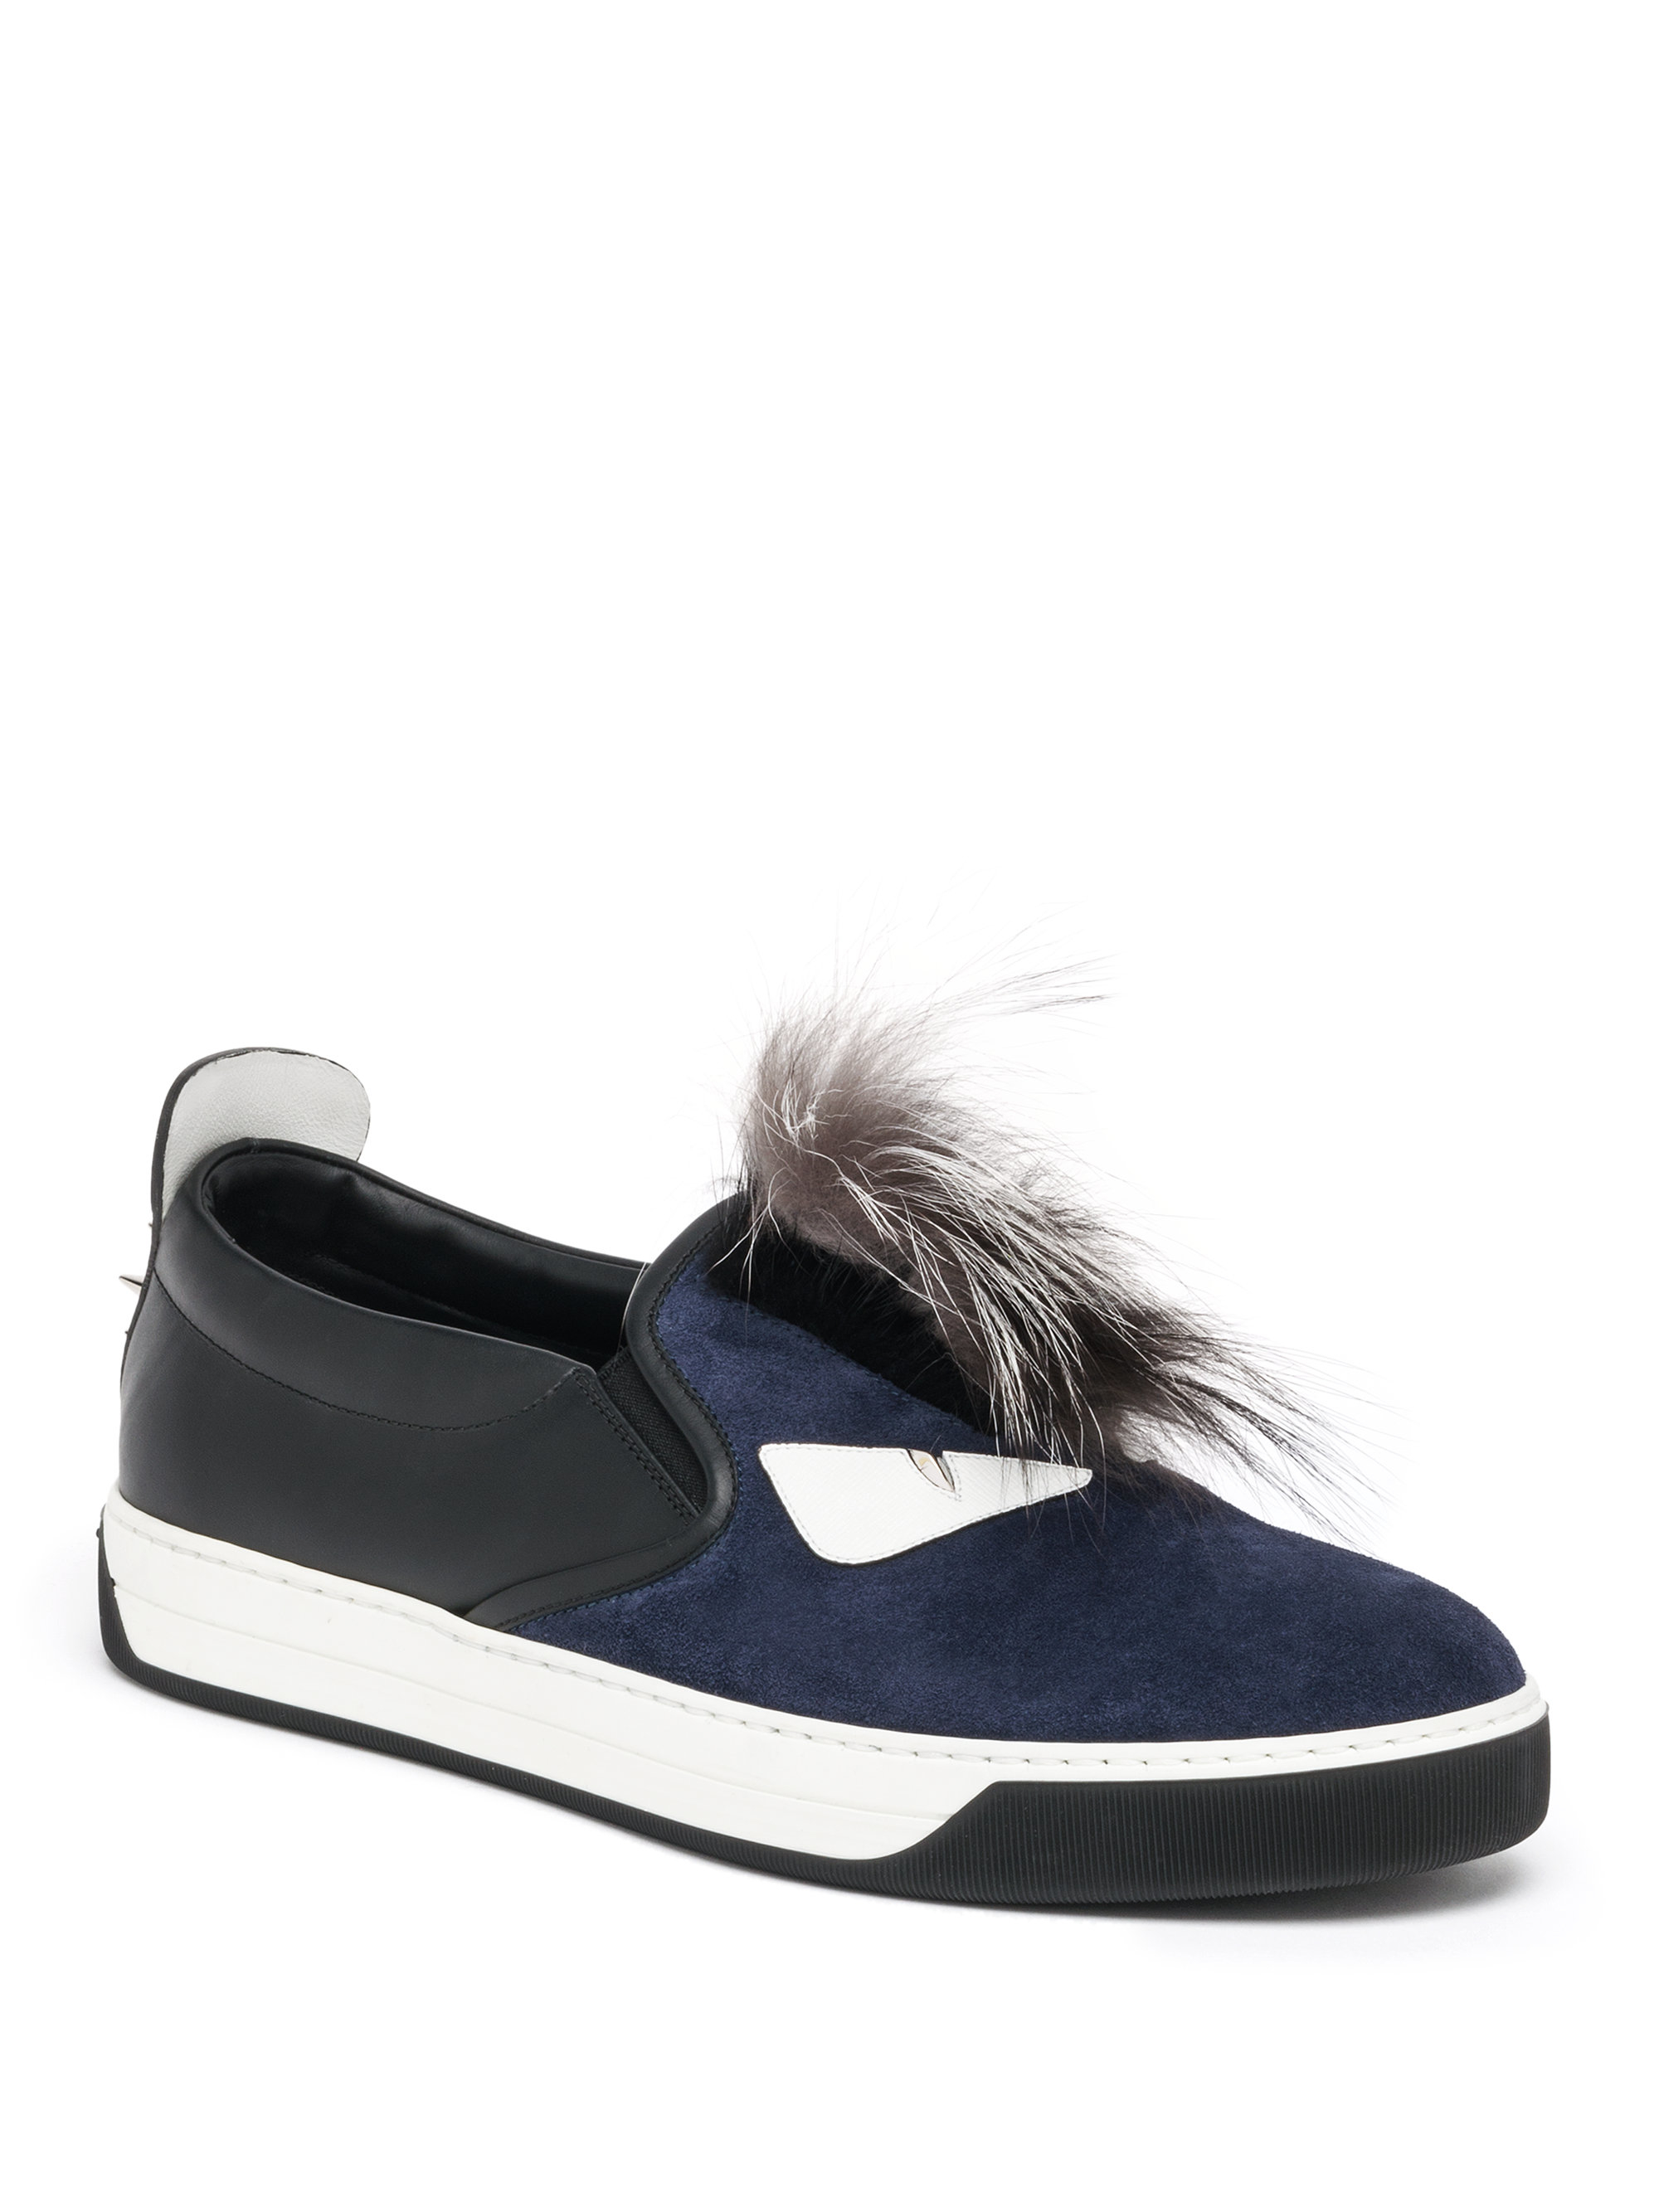 224c7118c846 Lyst - Fendi Monster Mohawk Fur Trimmed Leather Sneakers in Blue for Men